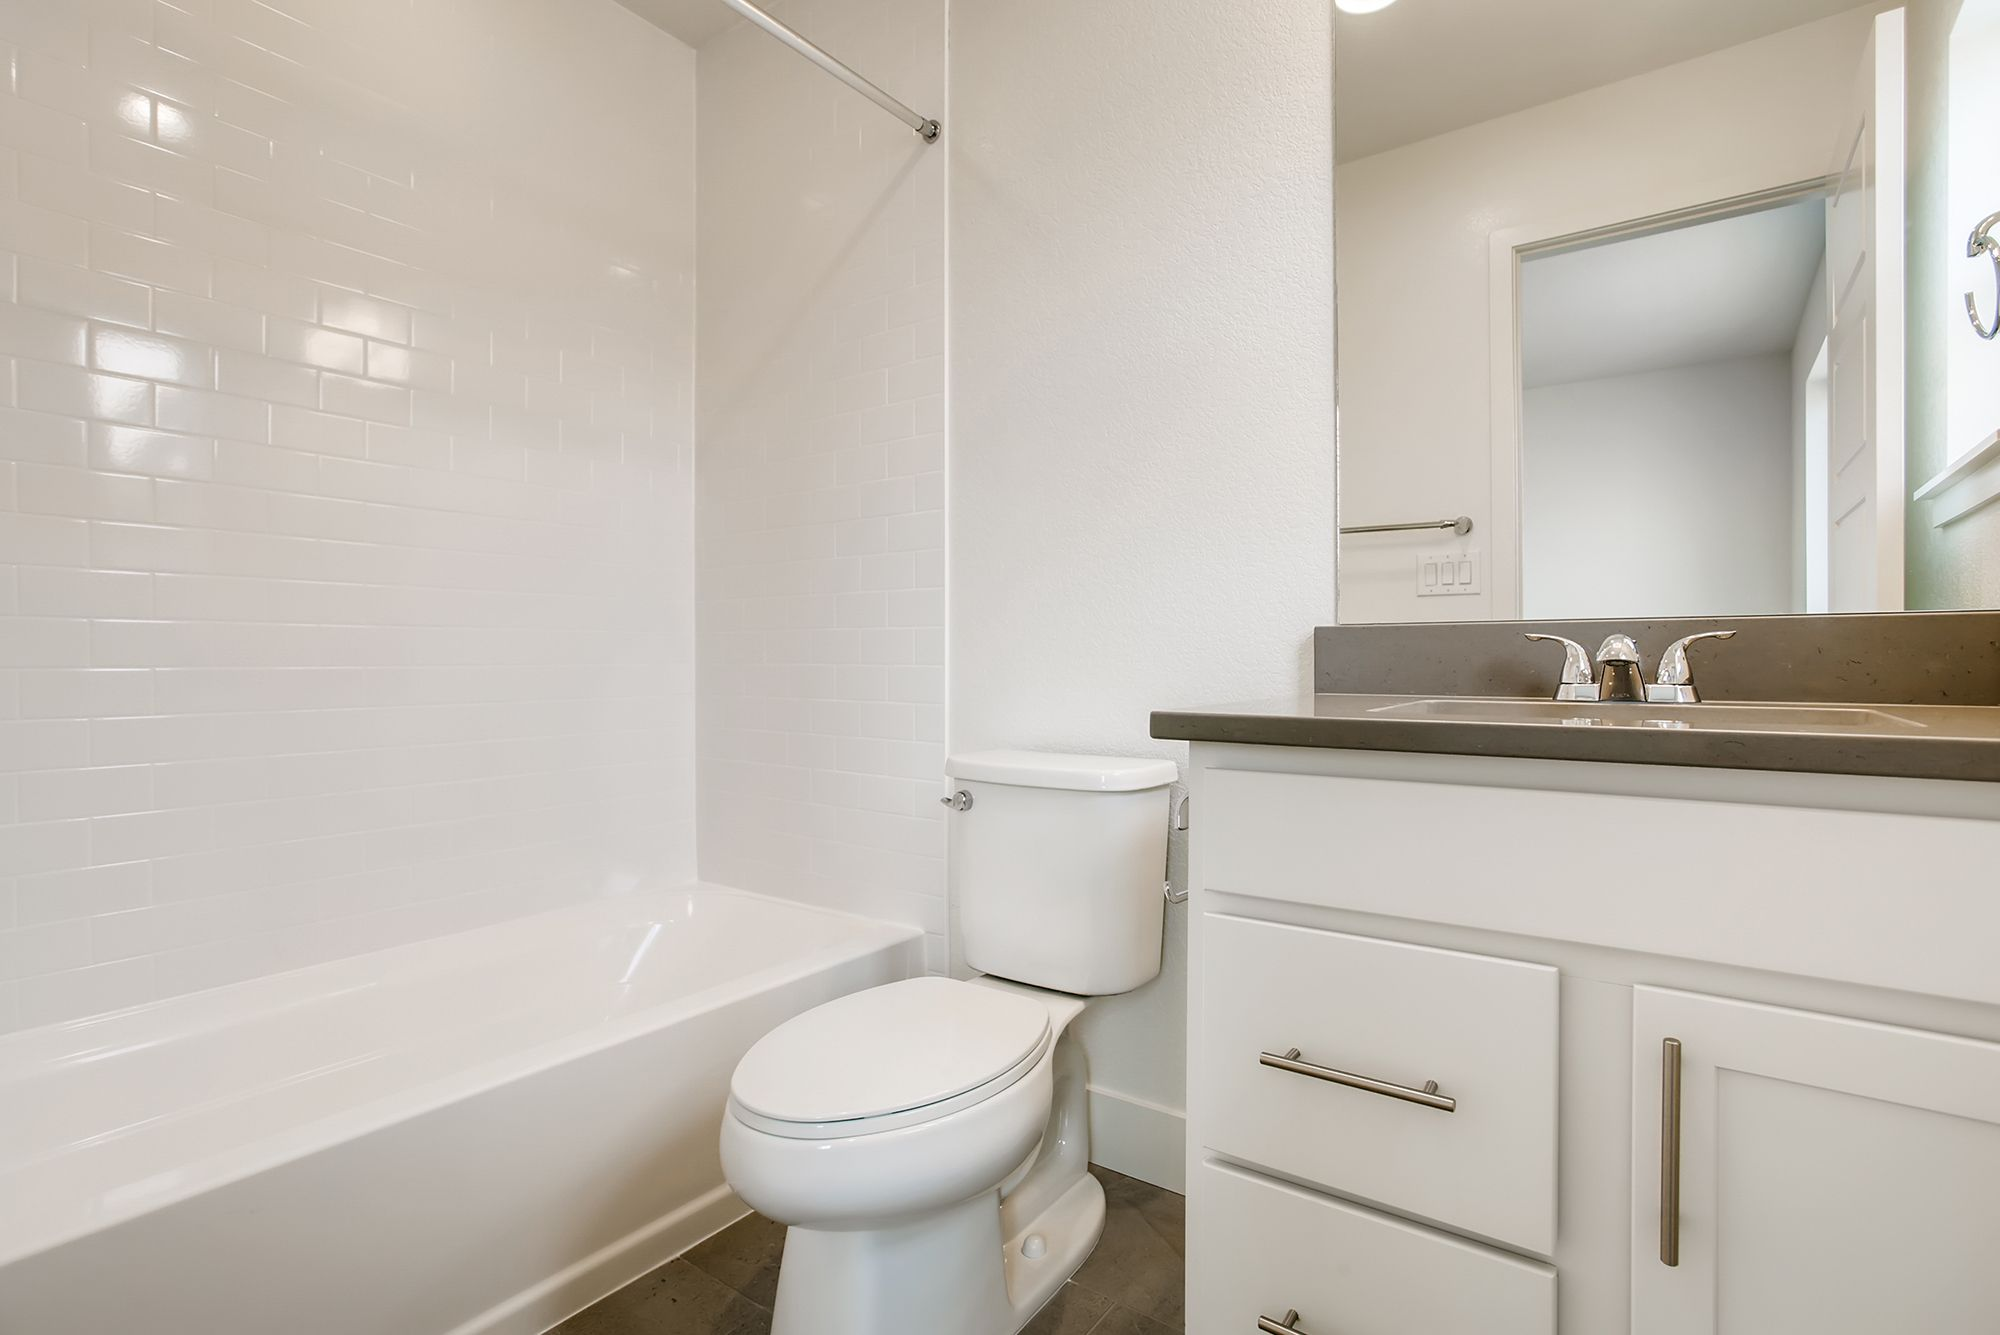 Bathroom featured in the Garland By Thrive Home Builders in Denver, CO